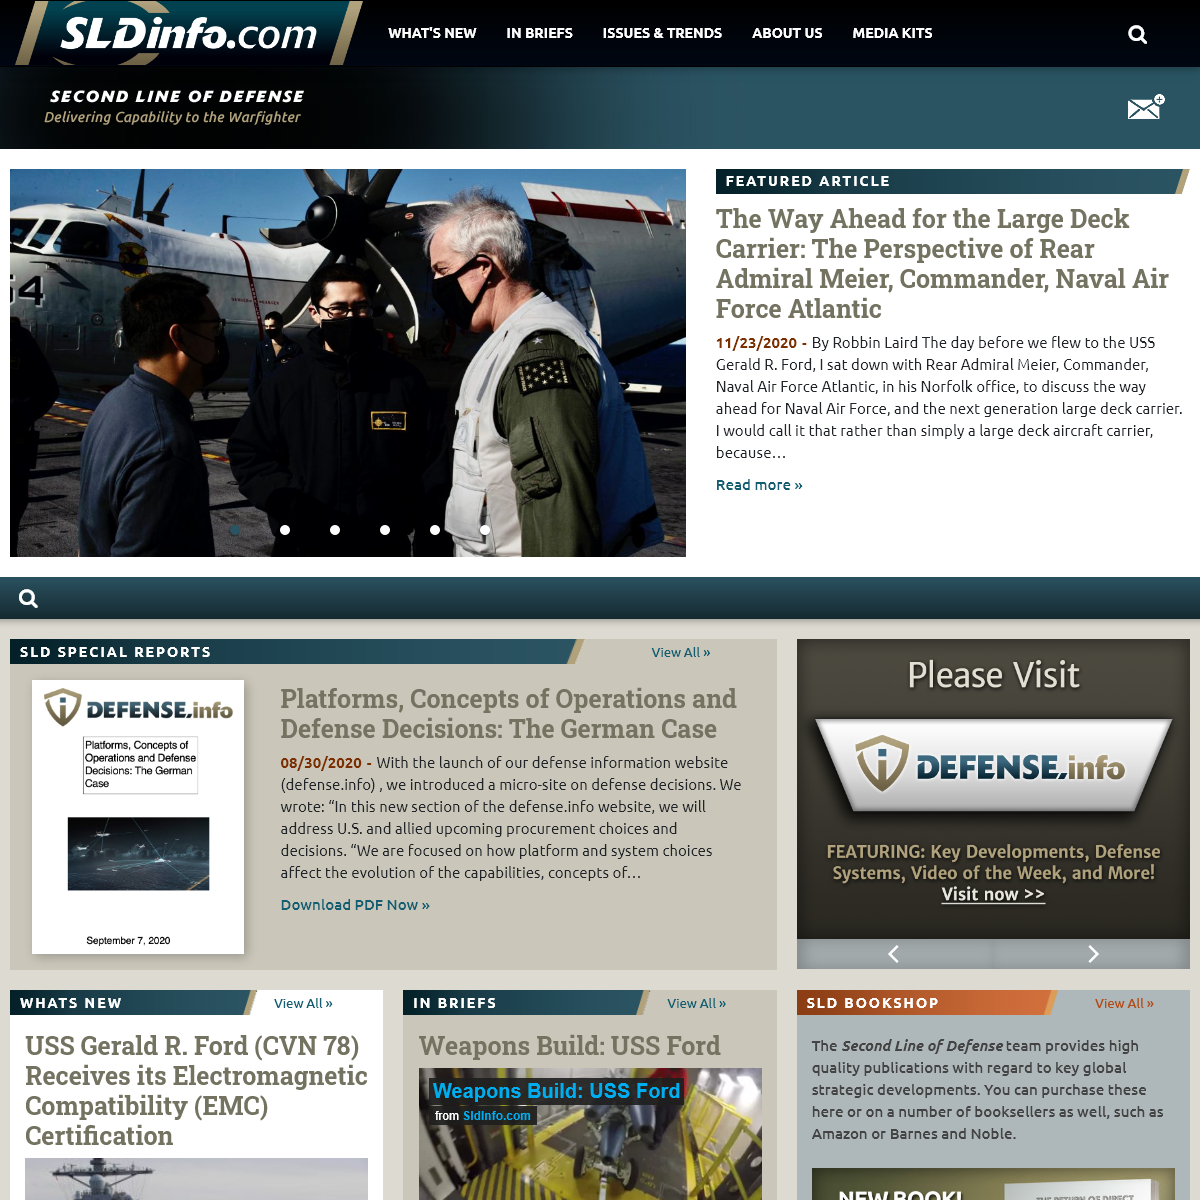 SLDinfo.com - Second Line of Defense - Delivering Capability to the Warfighter